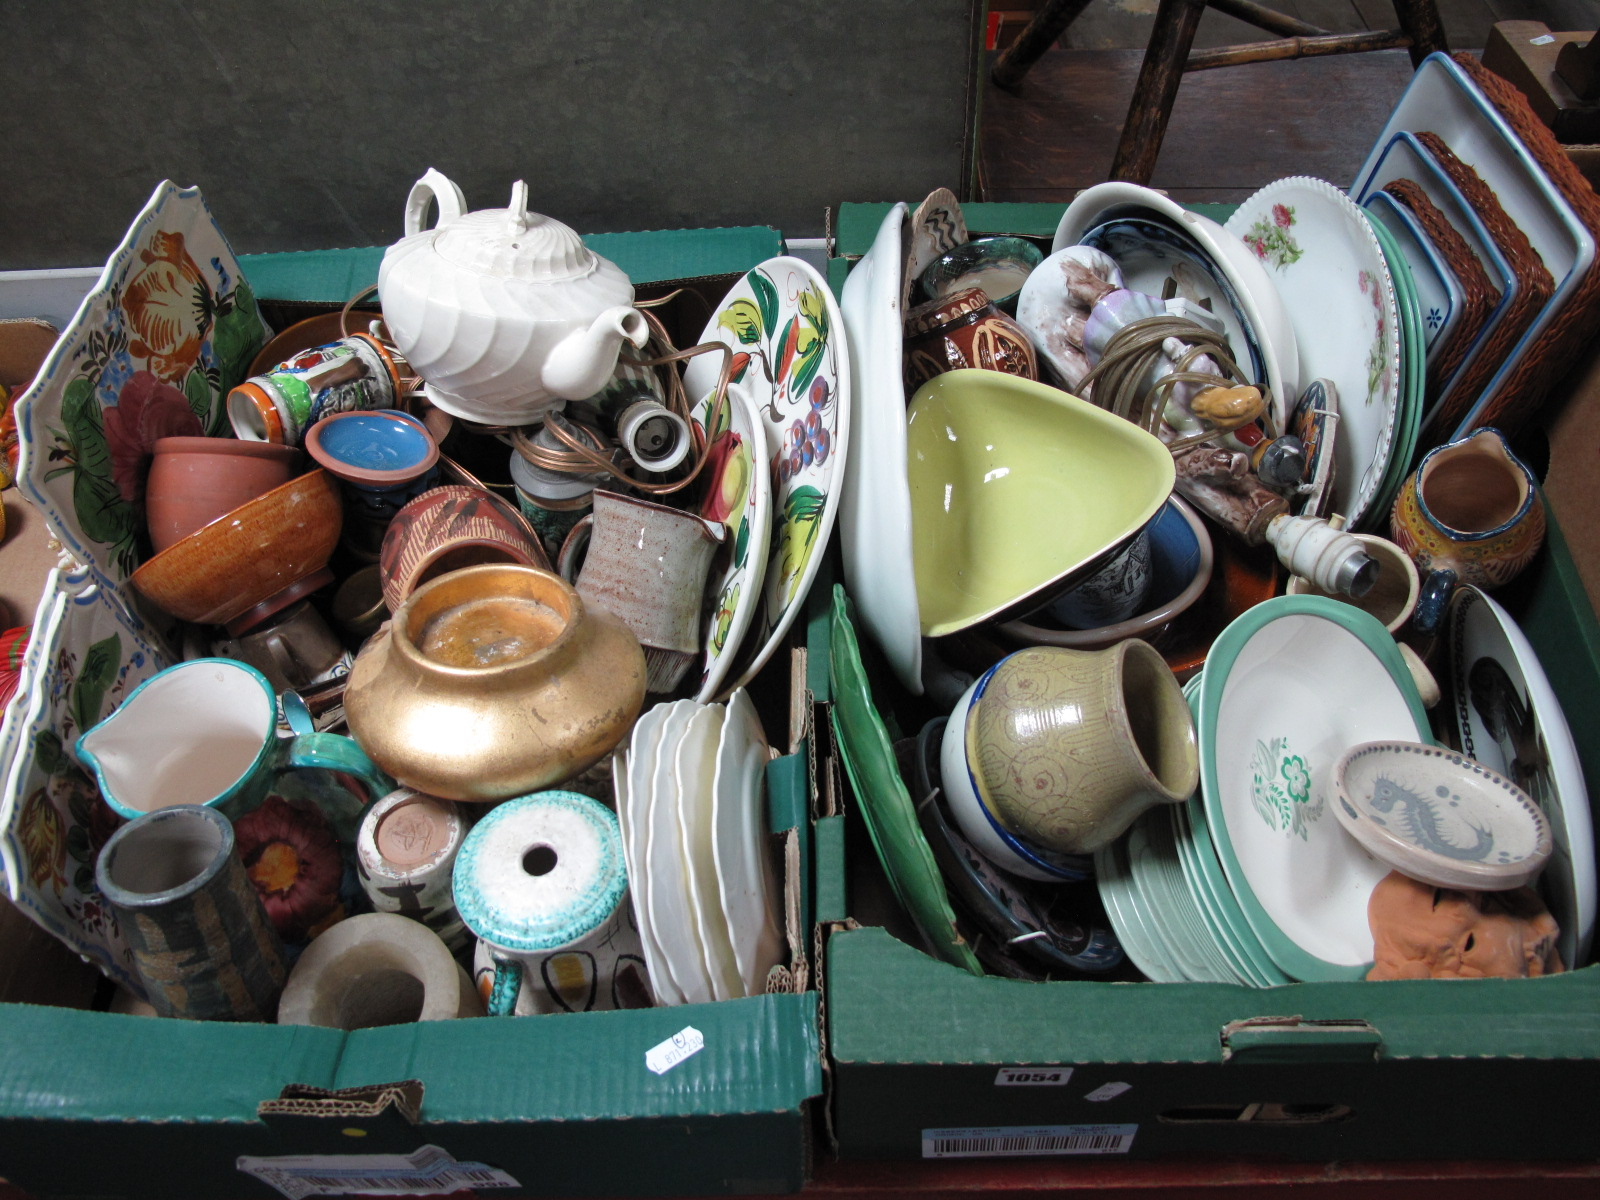 Lot 1054 - Midwinter Stylecraft Tableware, Langley triform dish, Beethoven bust etc:- Two Boxes